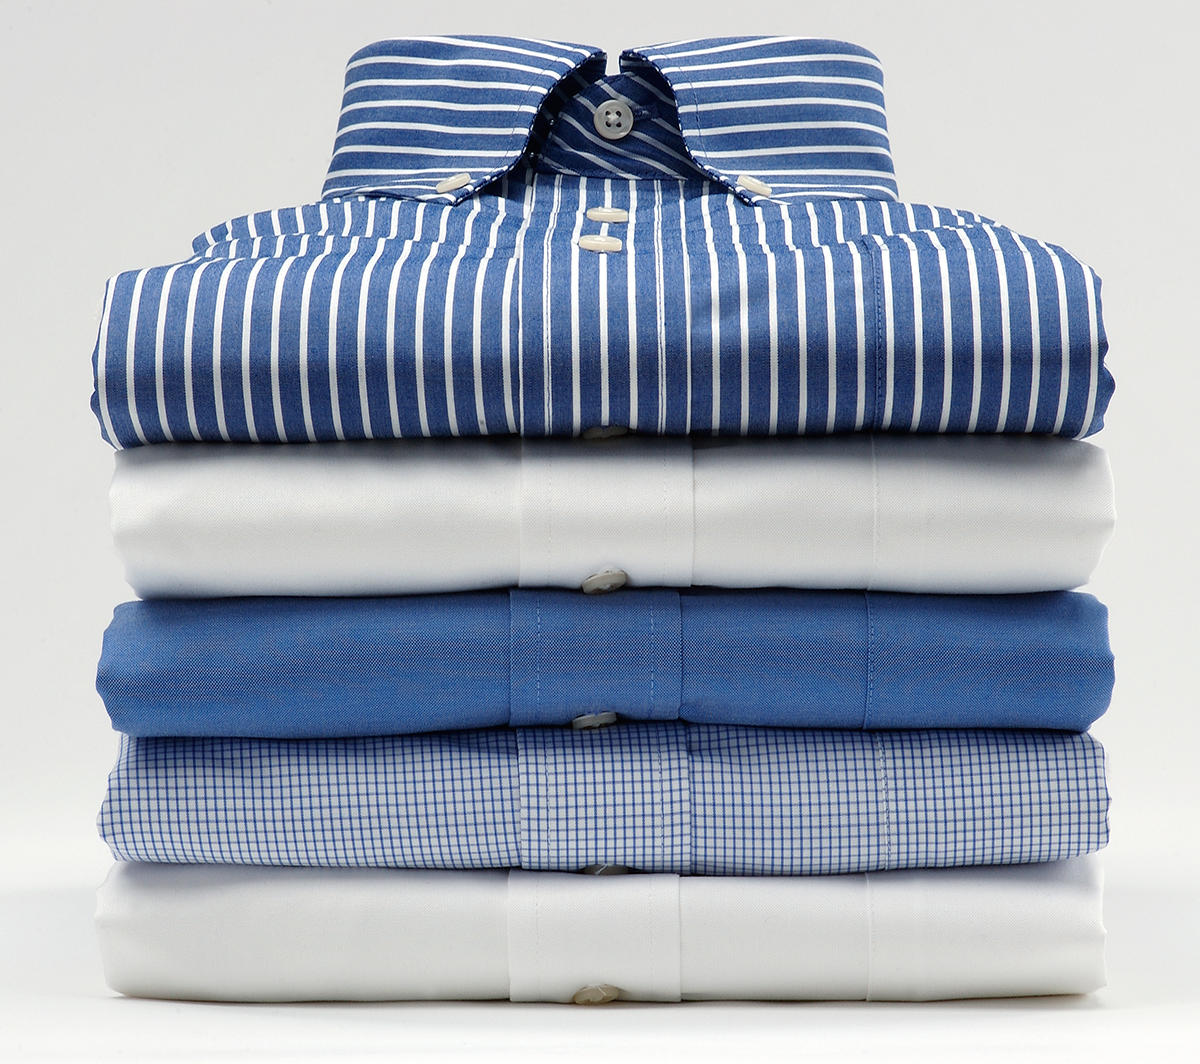 Proper care for dress shirts